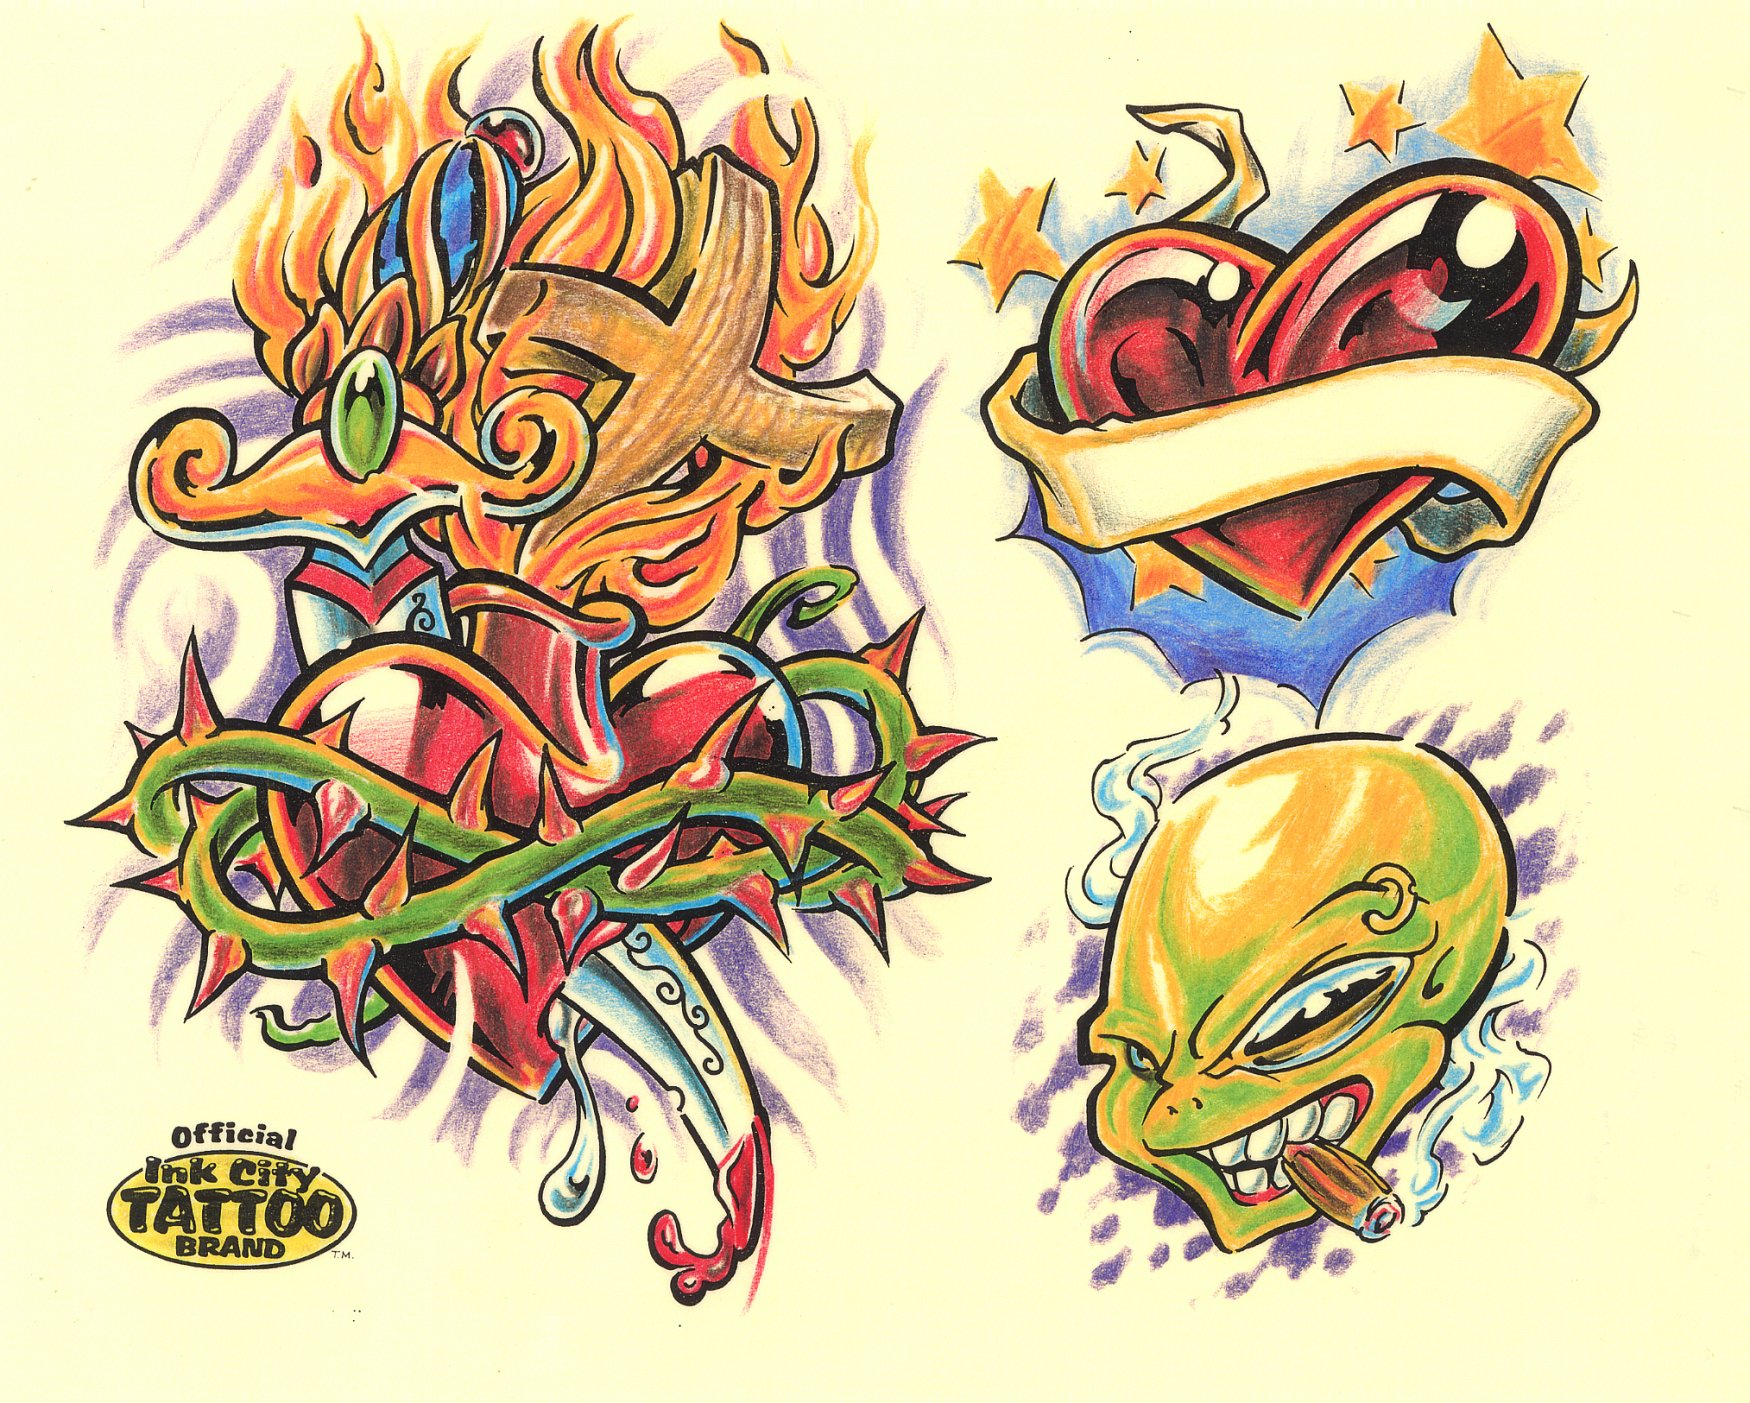 Tattoo designs by Ink City.